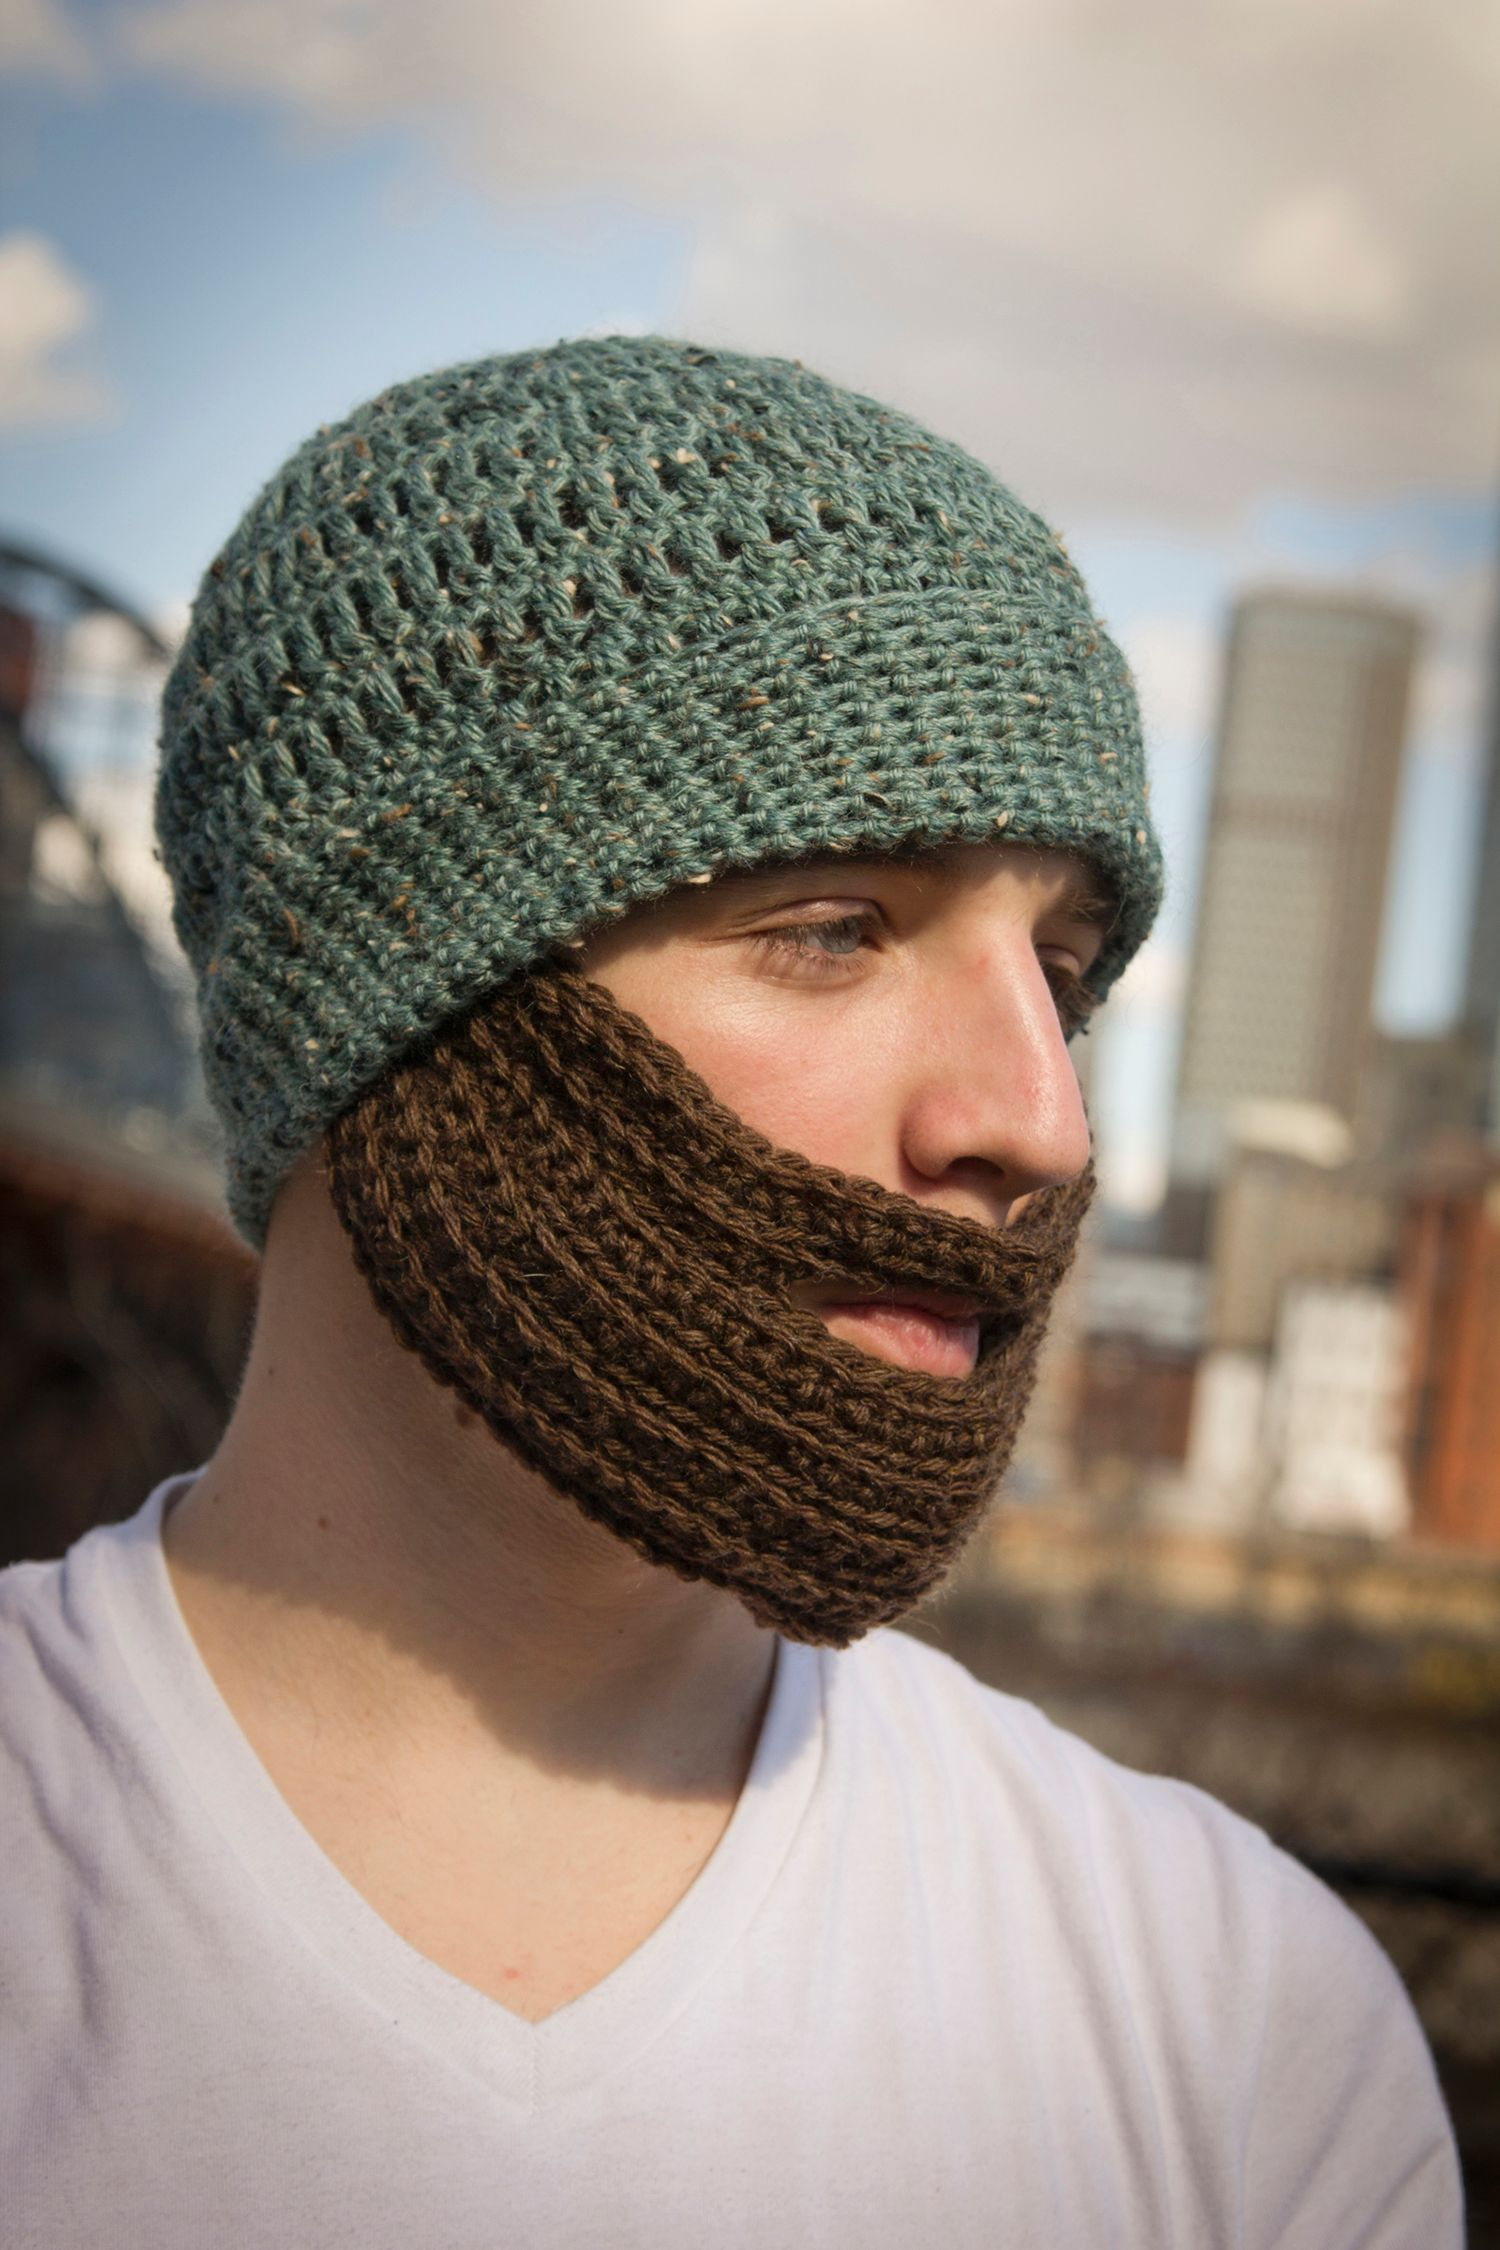 7a485d40a31 Crochet Bearded Hat - Knitting Patterns and Crochet Patterns from  KnitPicks.com